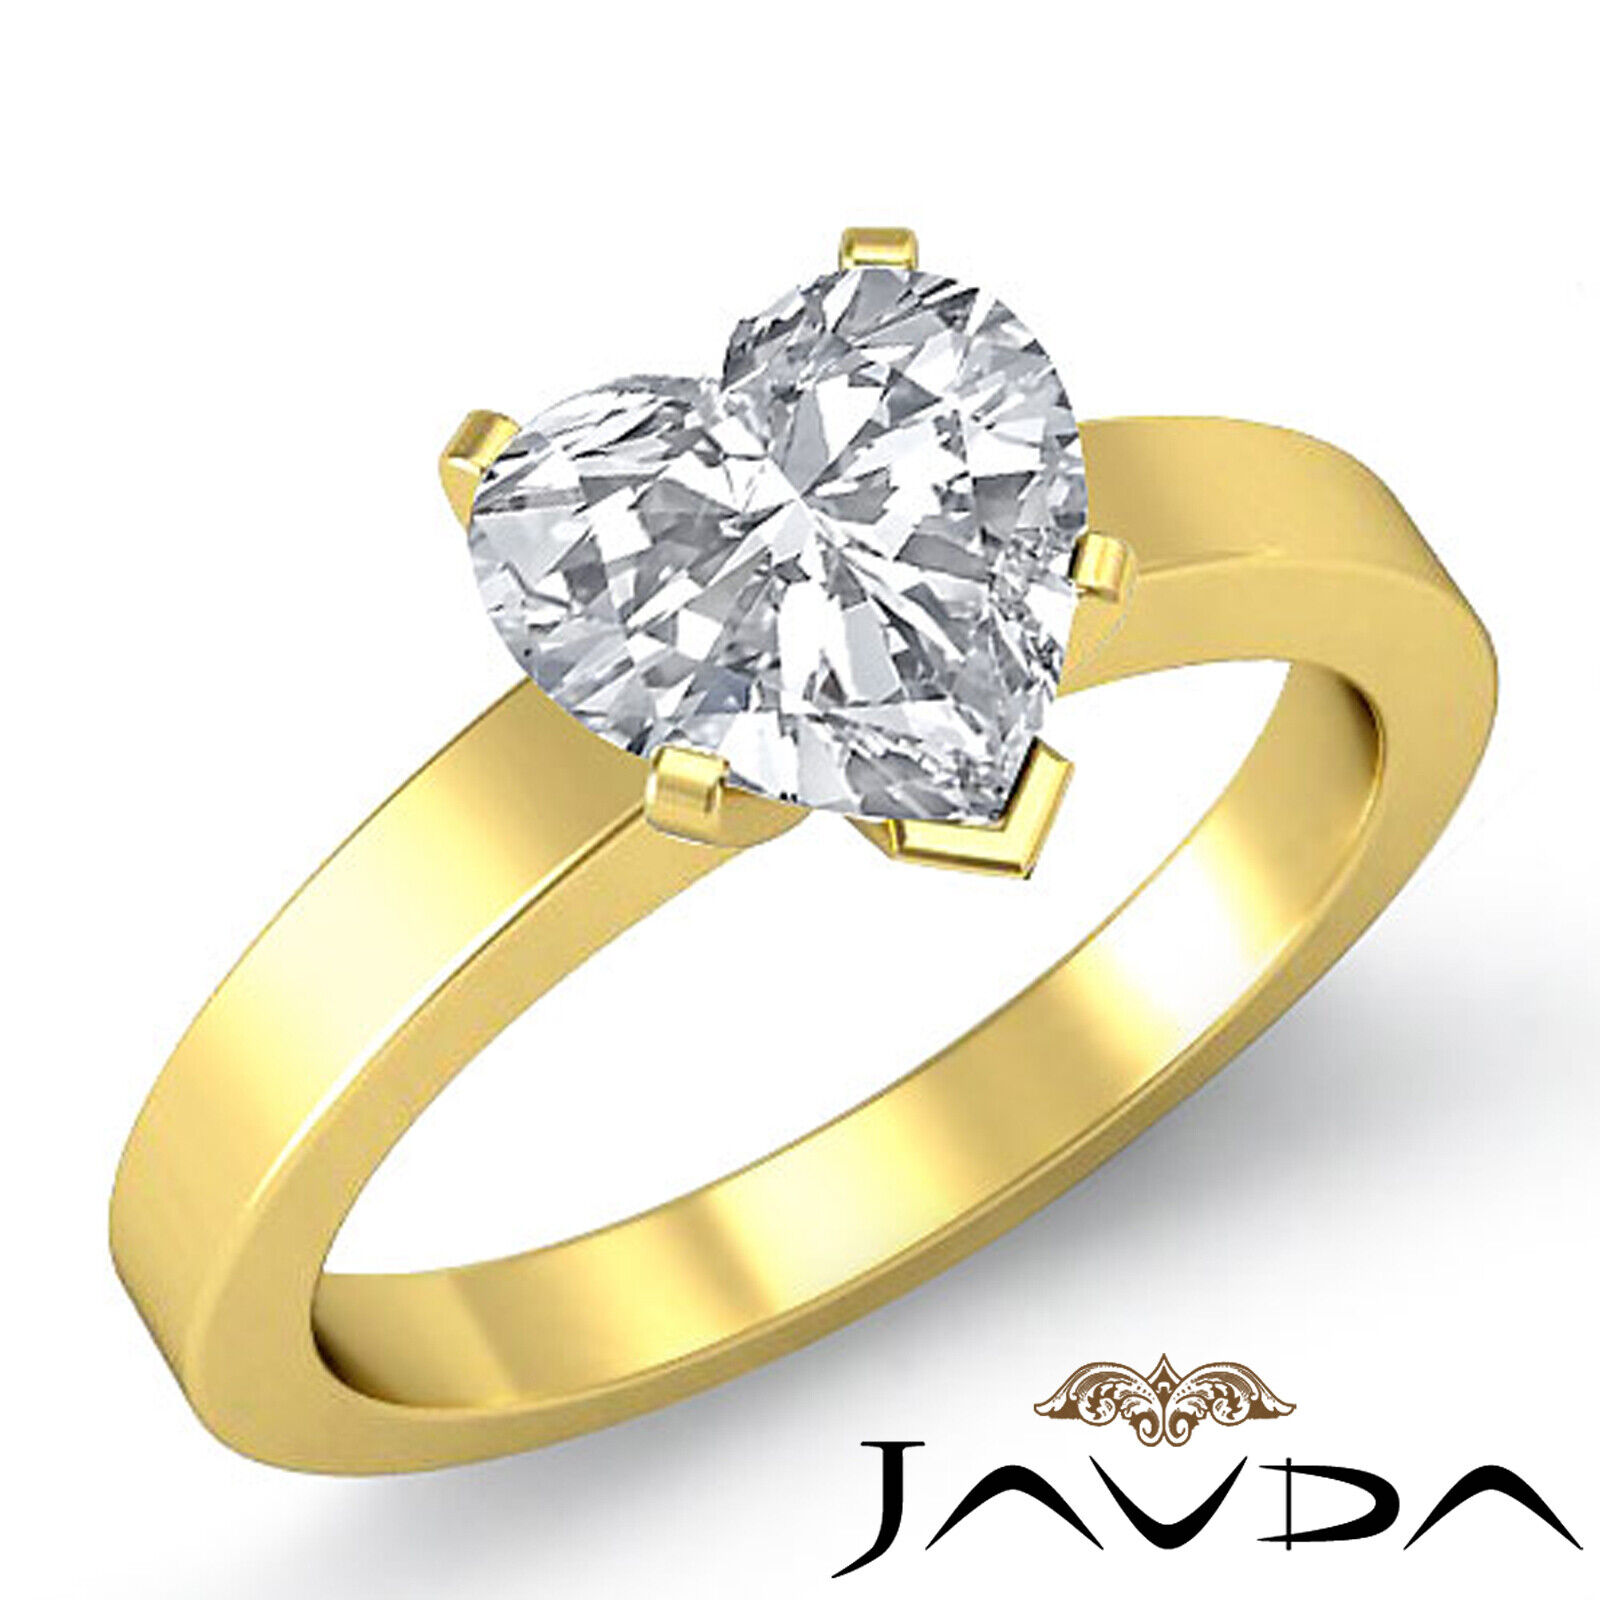 4 Prong Solitaire Heart Diamond Engagement GIA H  VS2 Gold Flat 3mm Ring 1.2 ct. 1